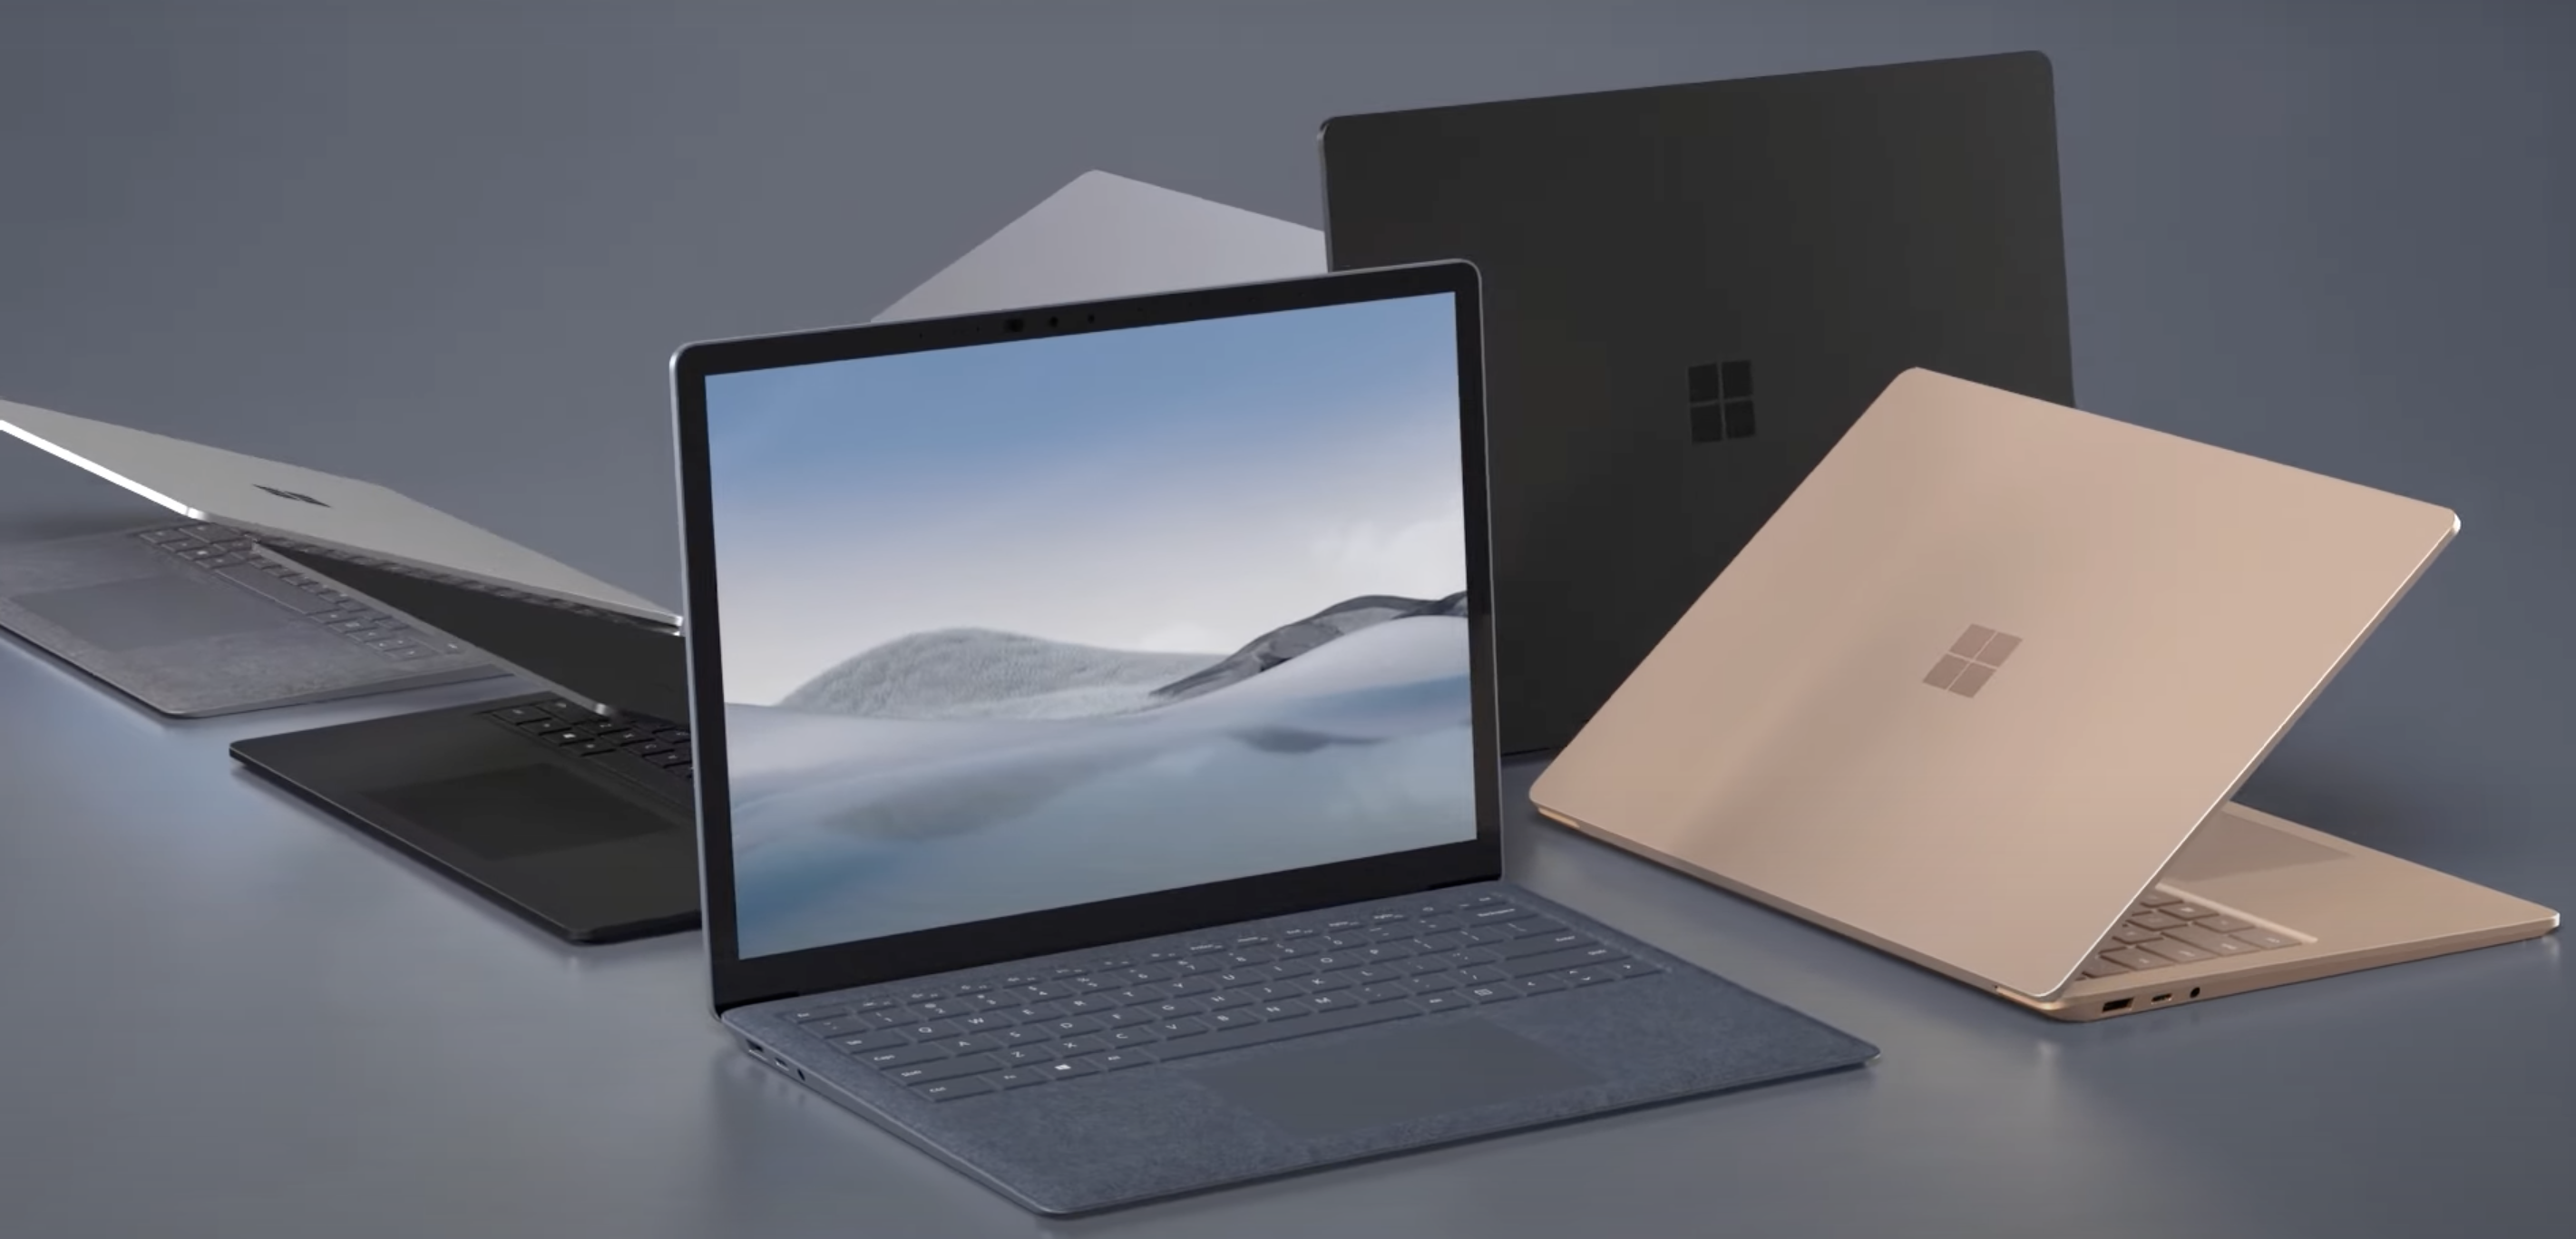 Microsoft Launches Surface Laptop 4 to India for Hybrid Work Era